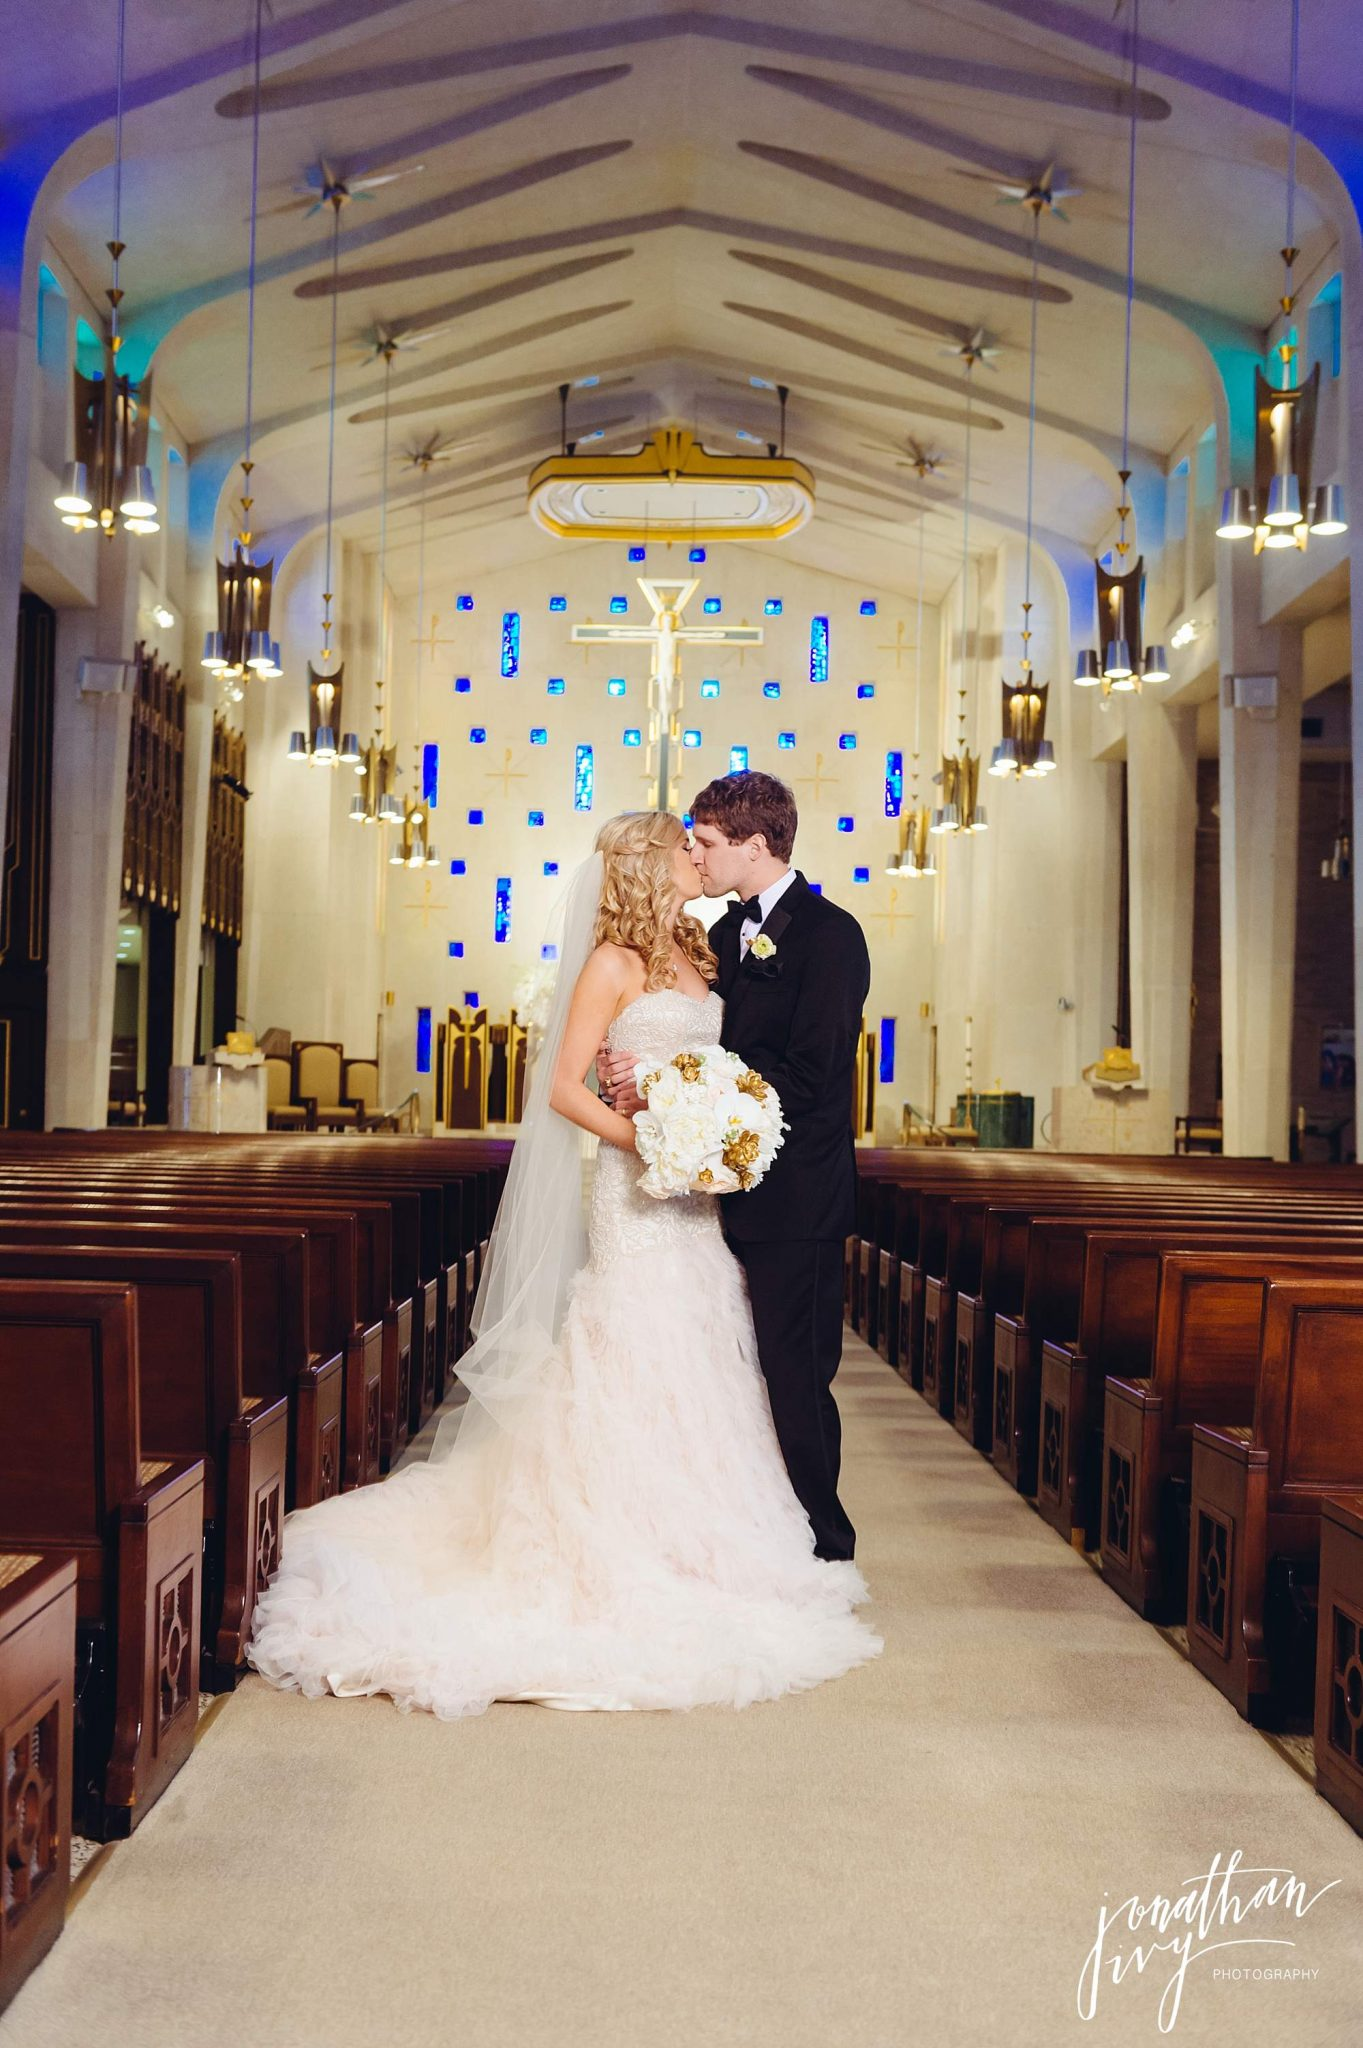 Sain Michaels Catholic Church Bride and Groom Wedding